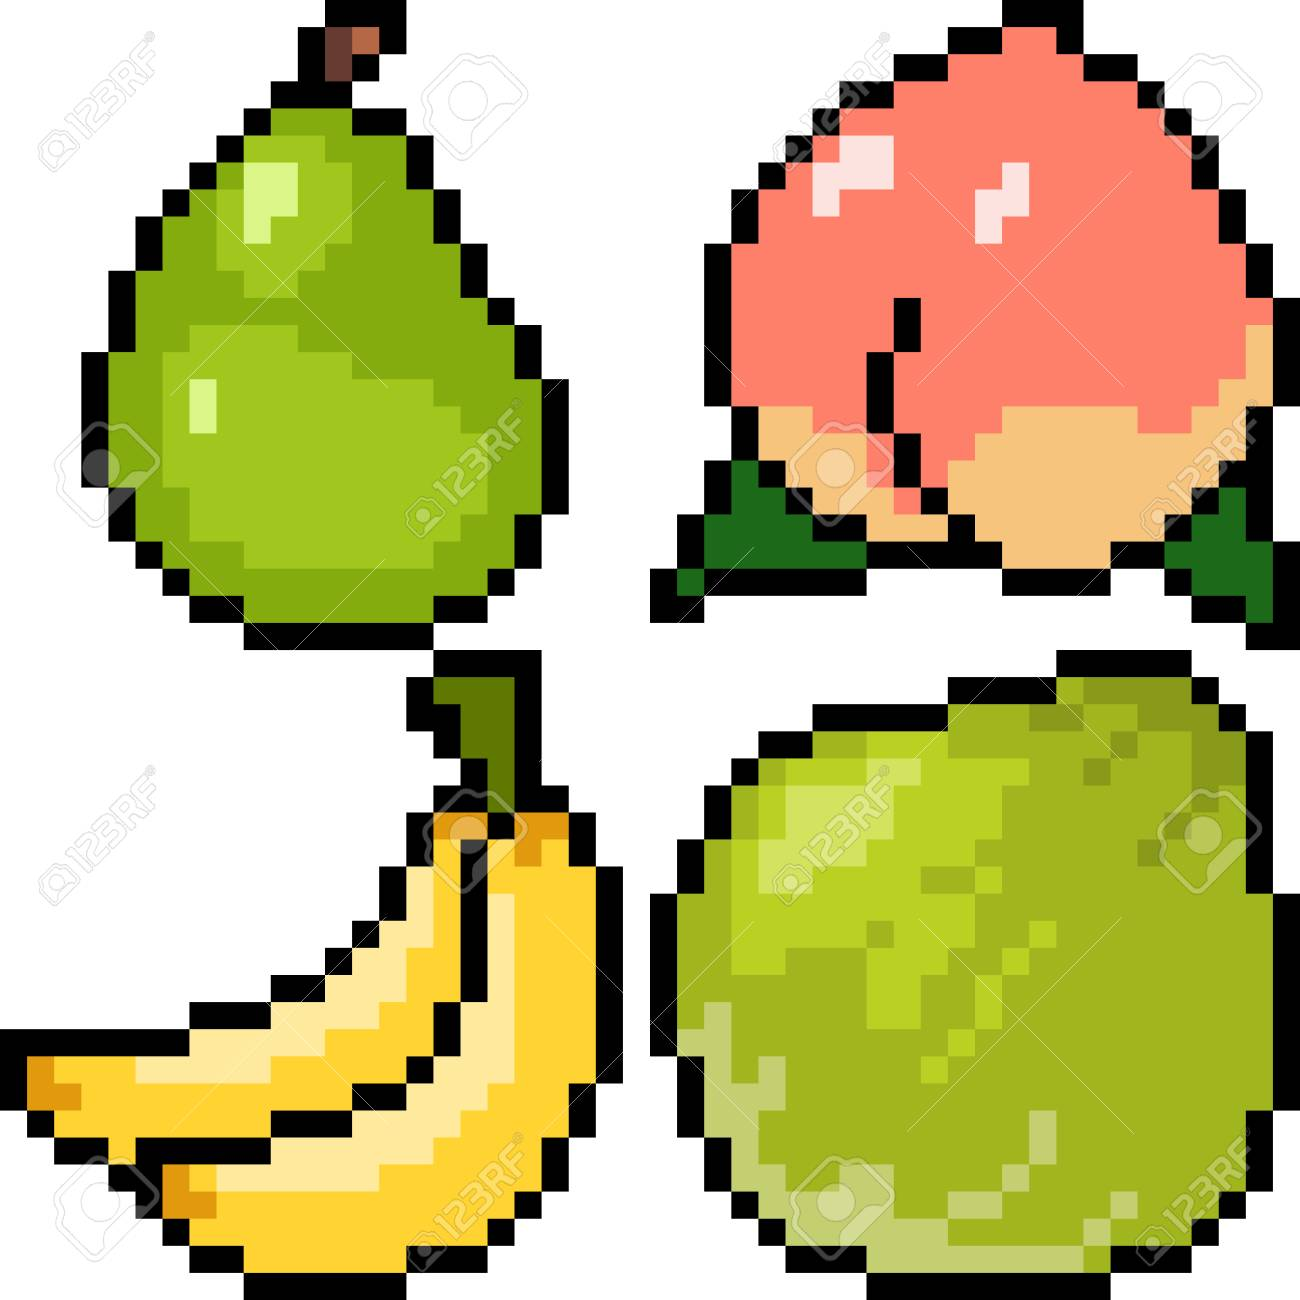 Vector Pixel Art Fruit Isolated Royalty Free Cliparts Vectors And Stock Illustration Image 90923411